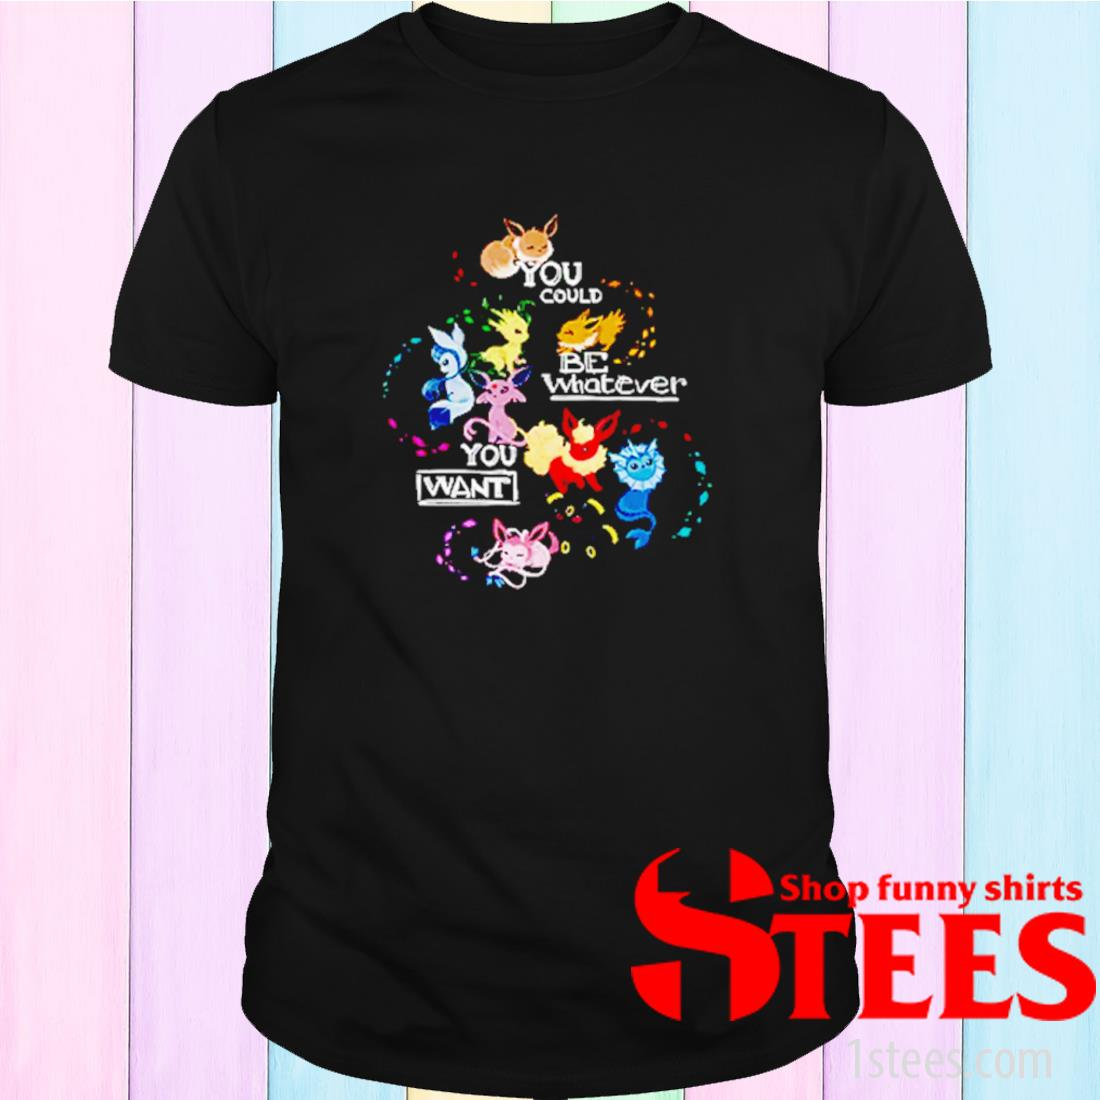 Pokemon You Could Be Whatever You Want Shirt